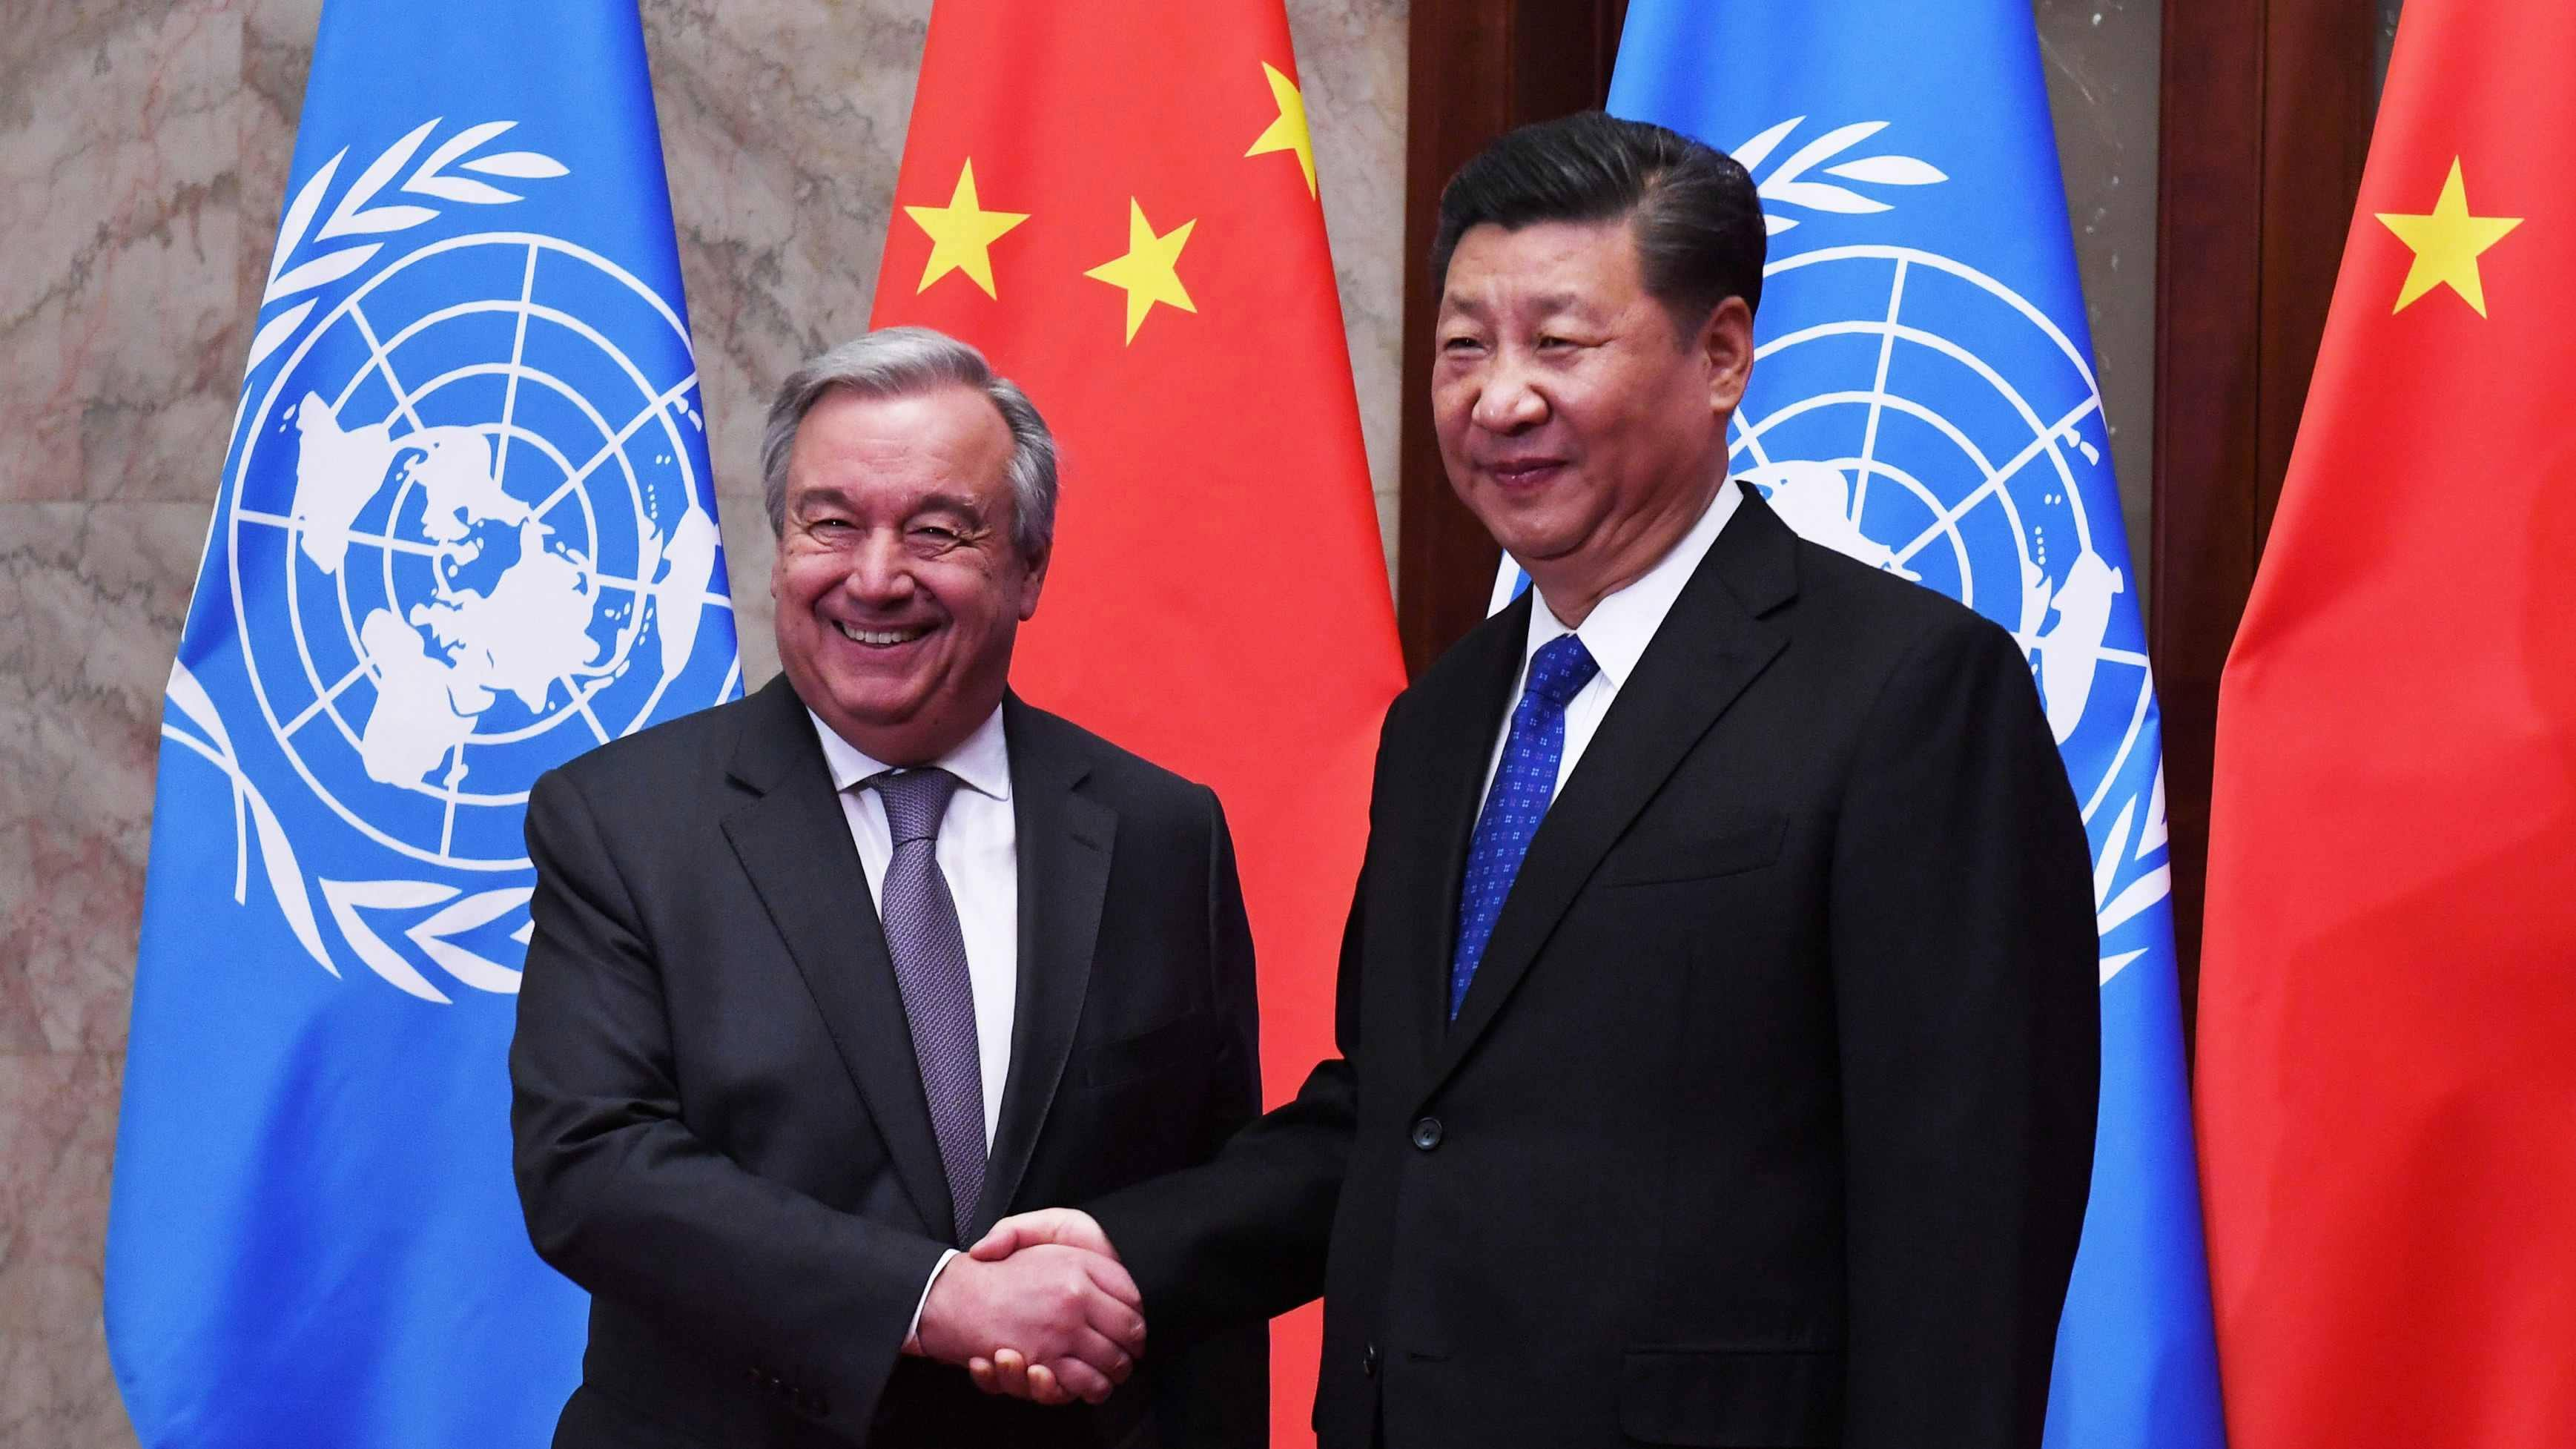 The 50th Anniversary of the Restoration of the People's Republic of China's Lawful Seat in the United Nations